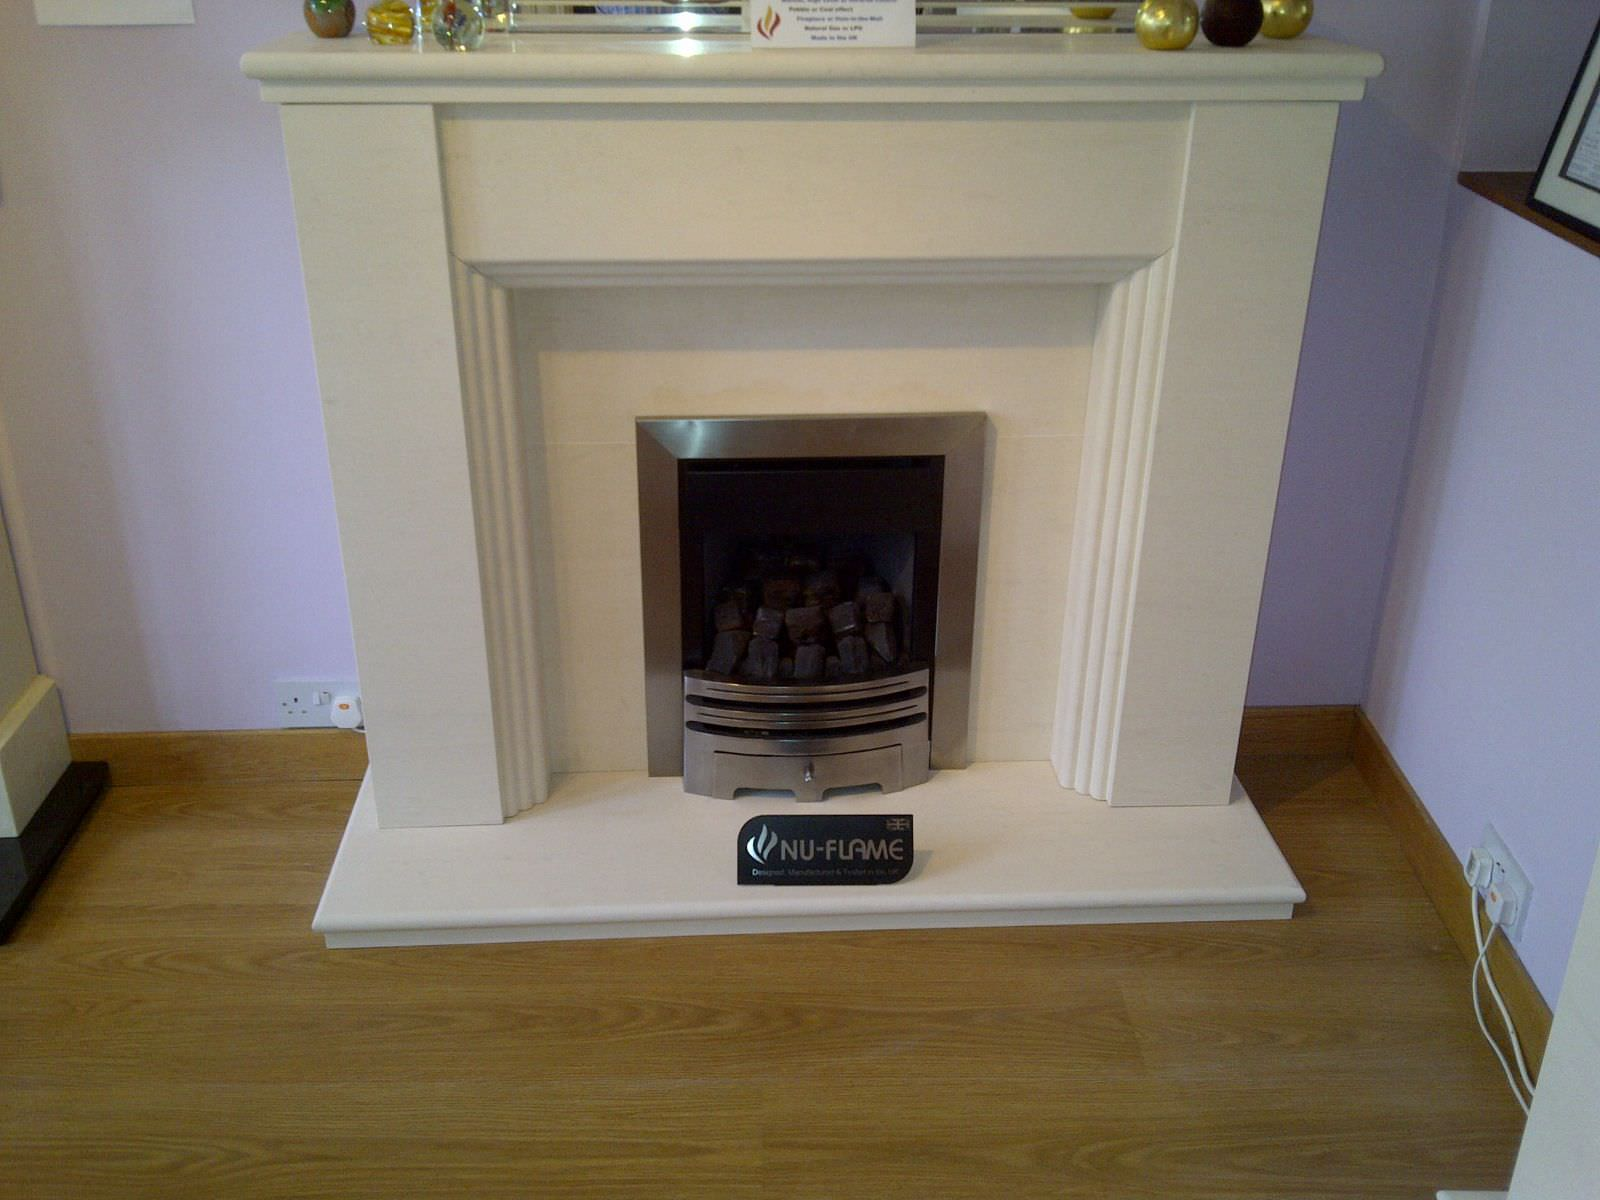 showroom fires and fireplace displays on special offer daniel dunlop